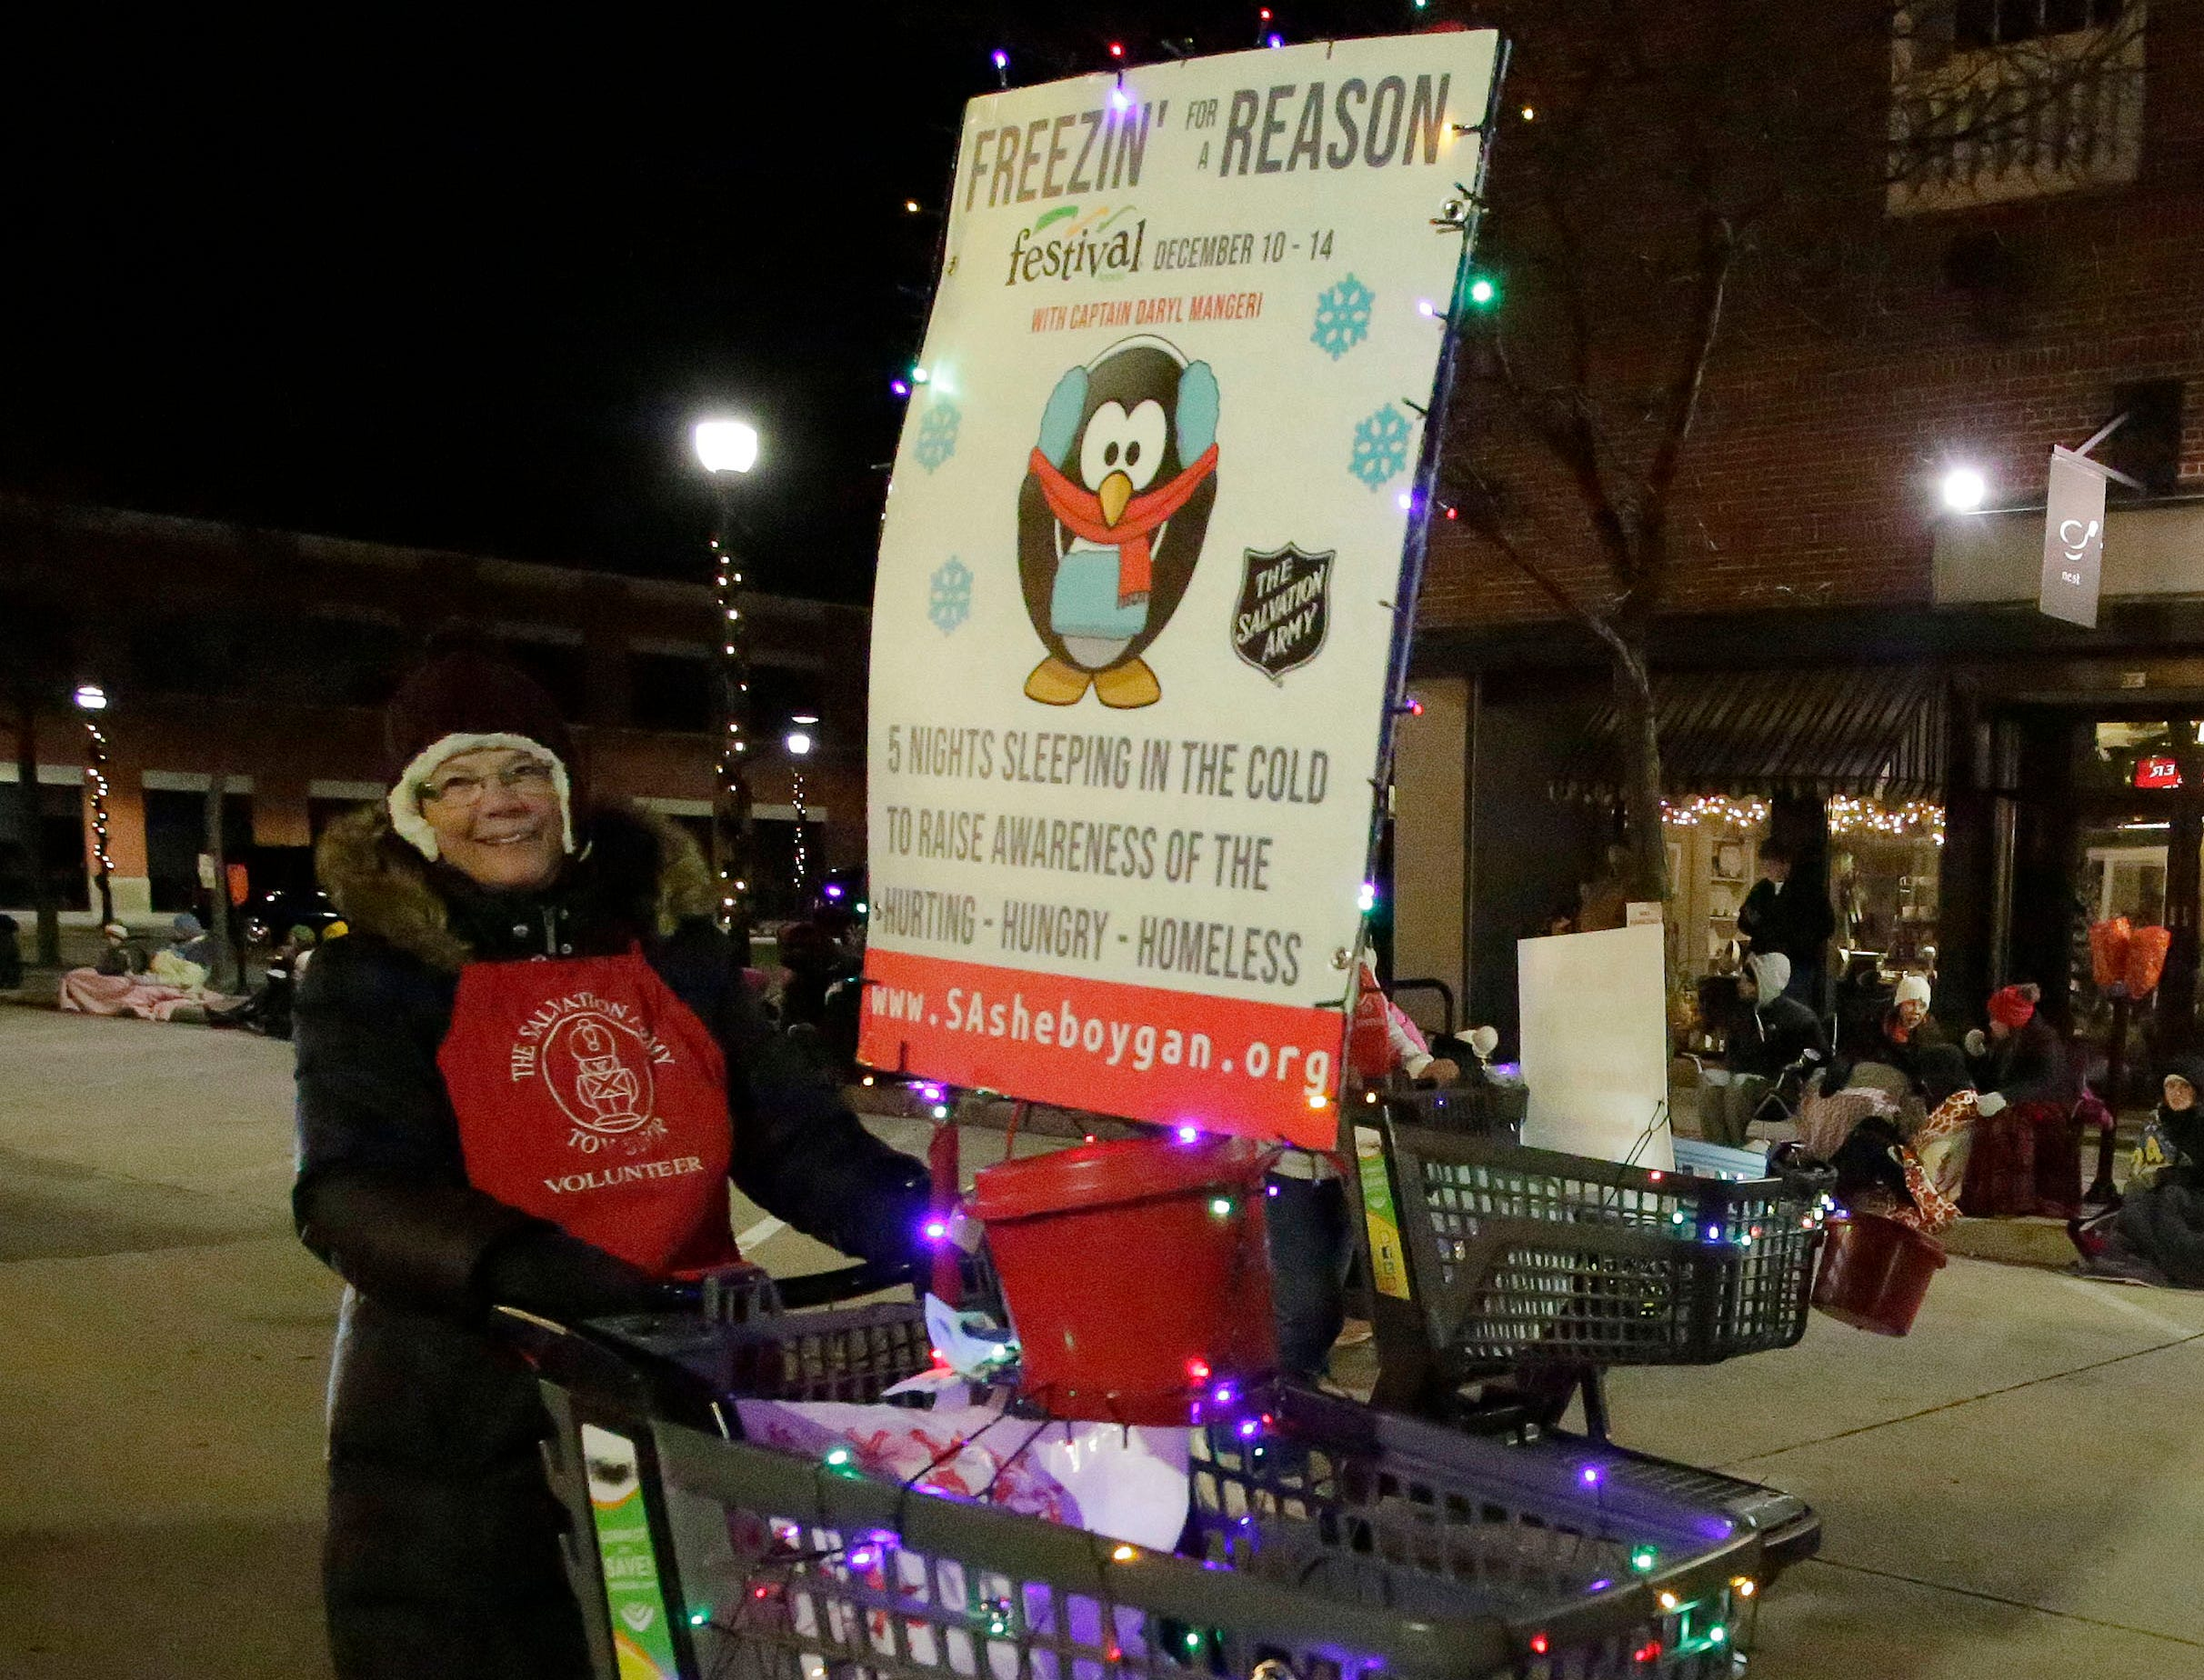 The Salvation Army was on parade at the 26th Annual Jaycees Holiday Parade, Sunday, November 25, 2018 in Sheboygan, Wis.